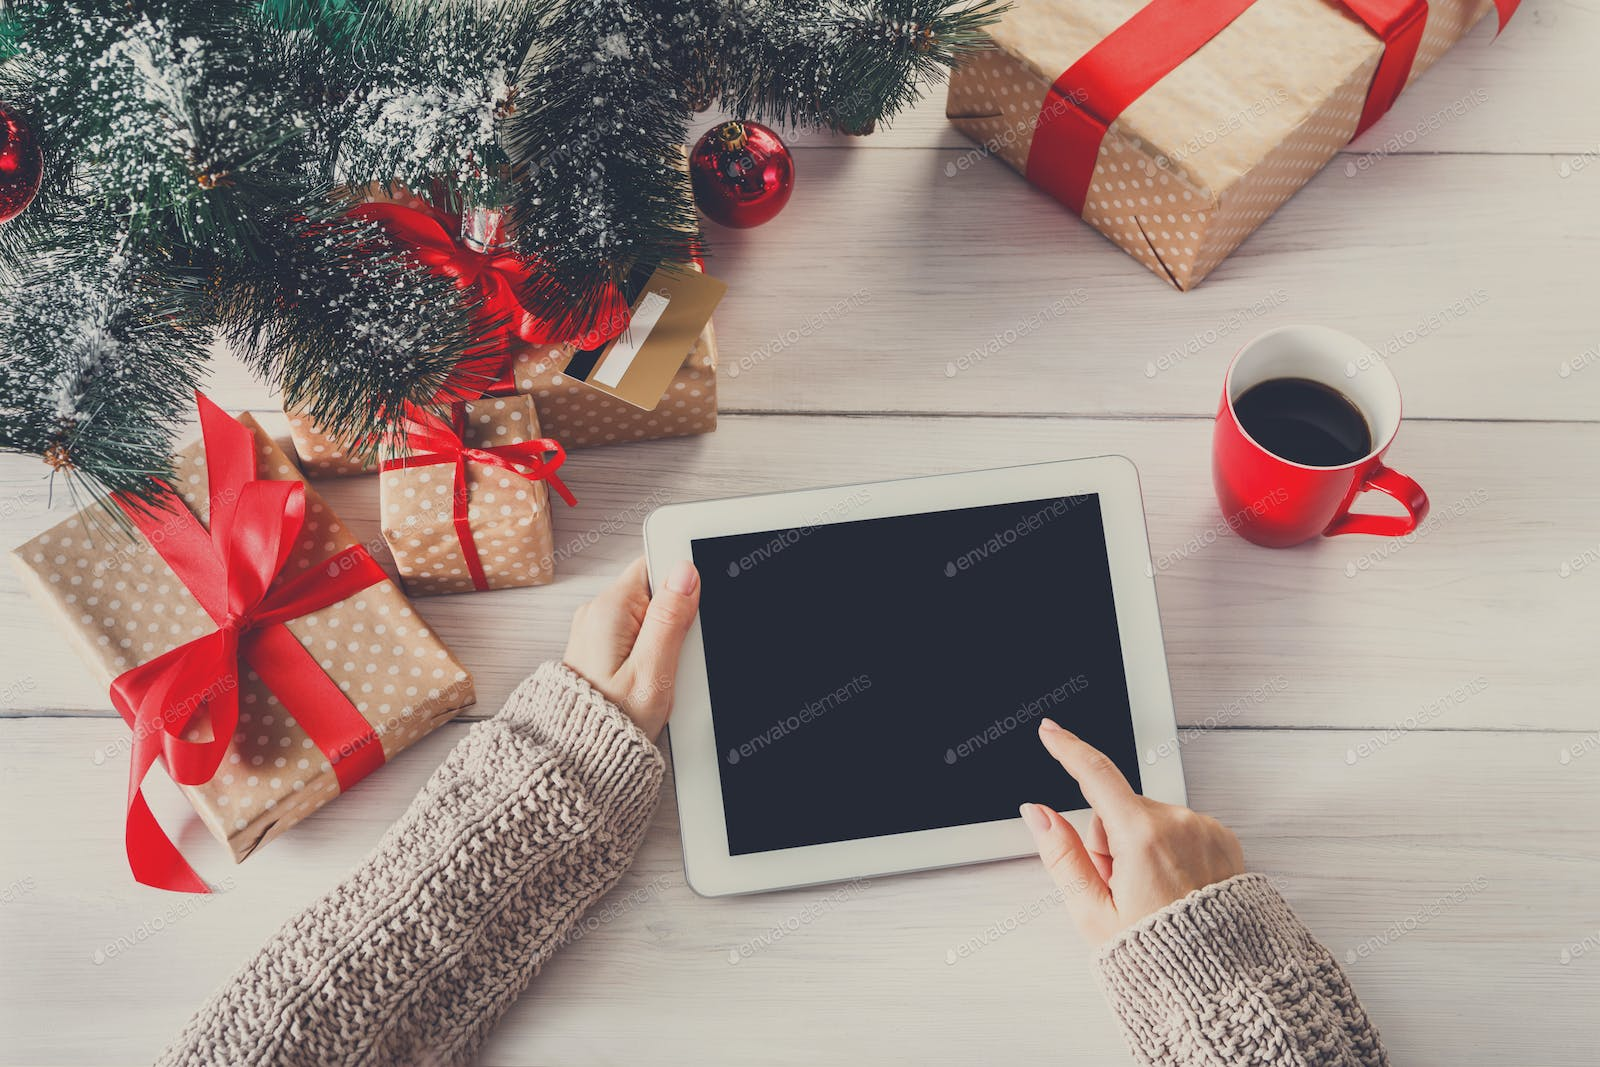 Woman Christmas Shopping Online With A Credit Card Photo By Prostock Studio On Envato Elements